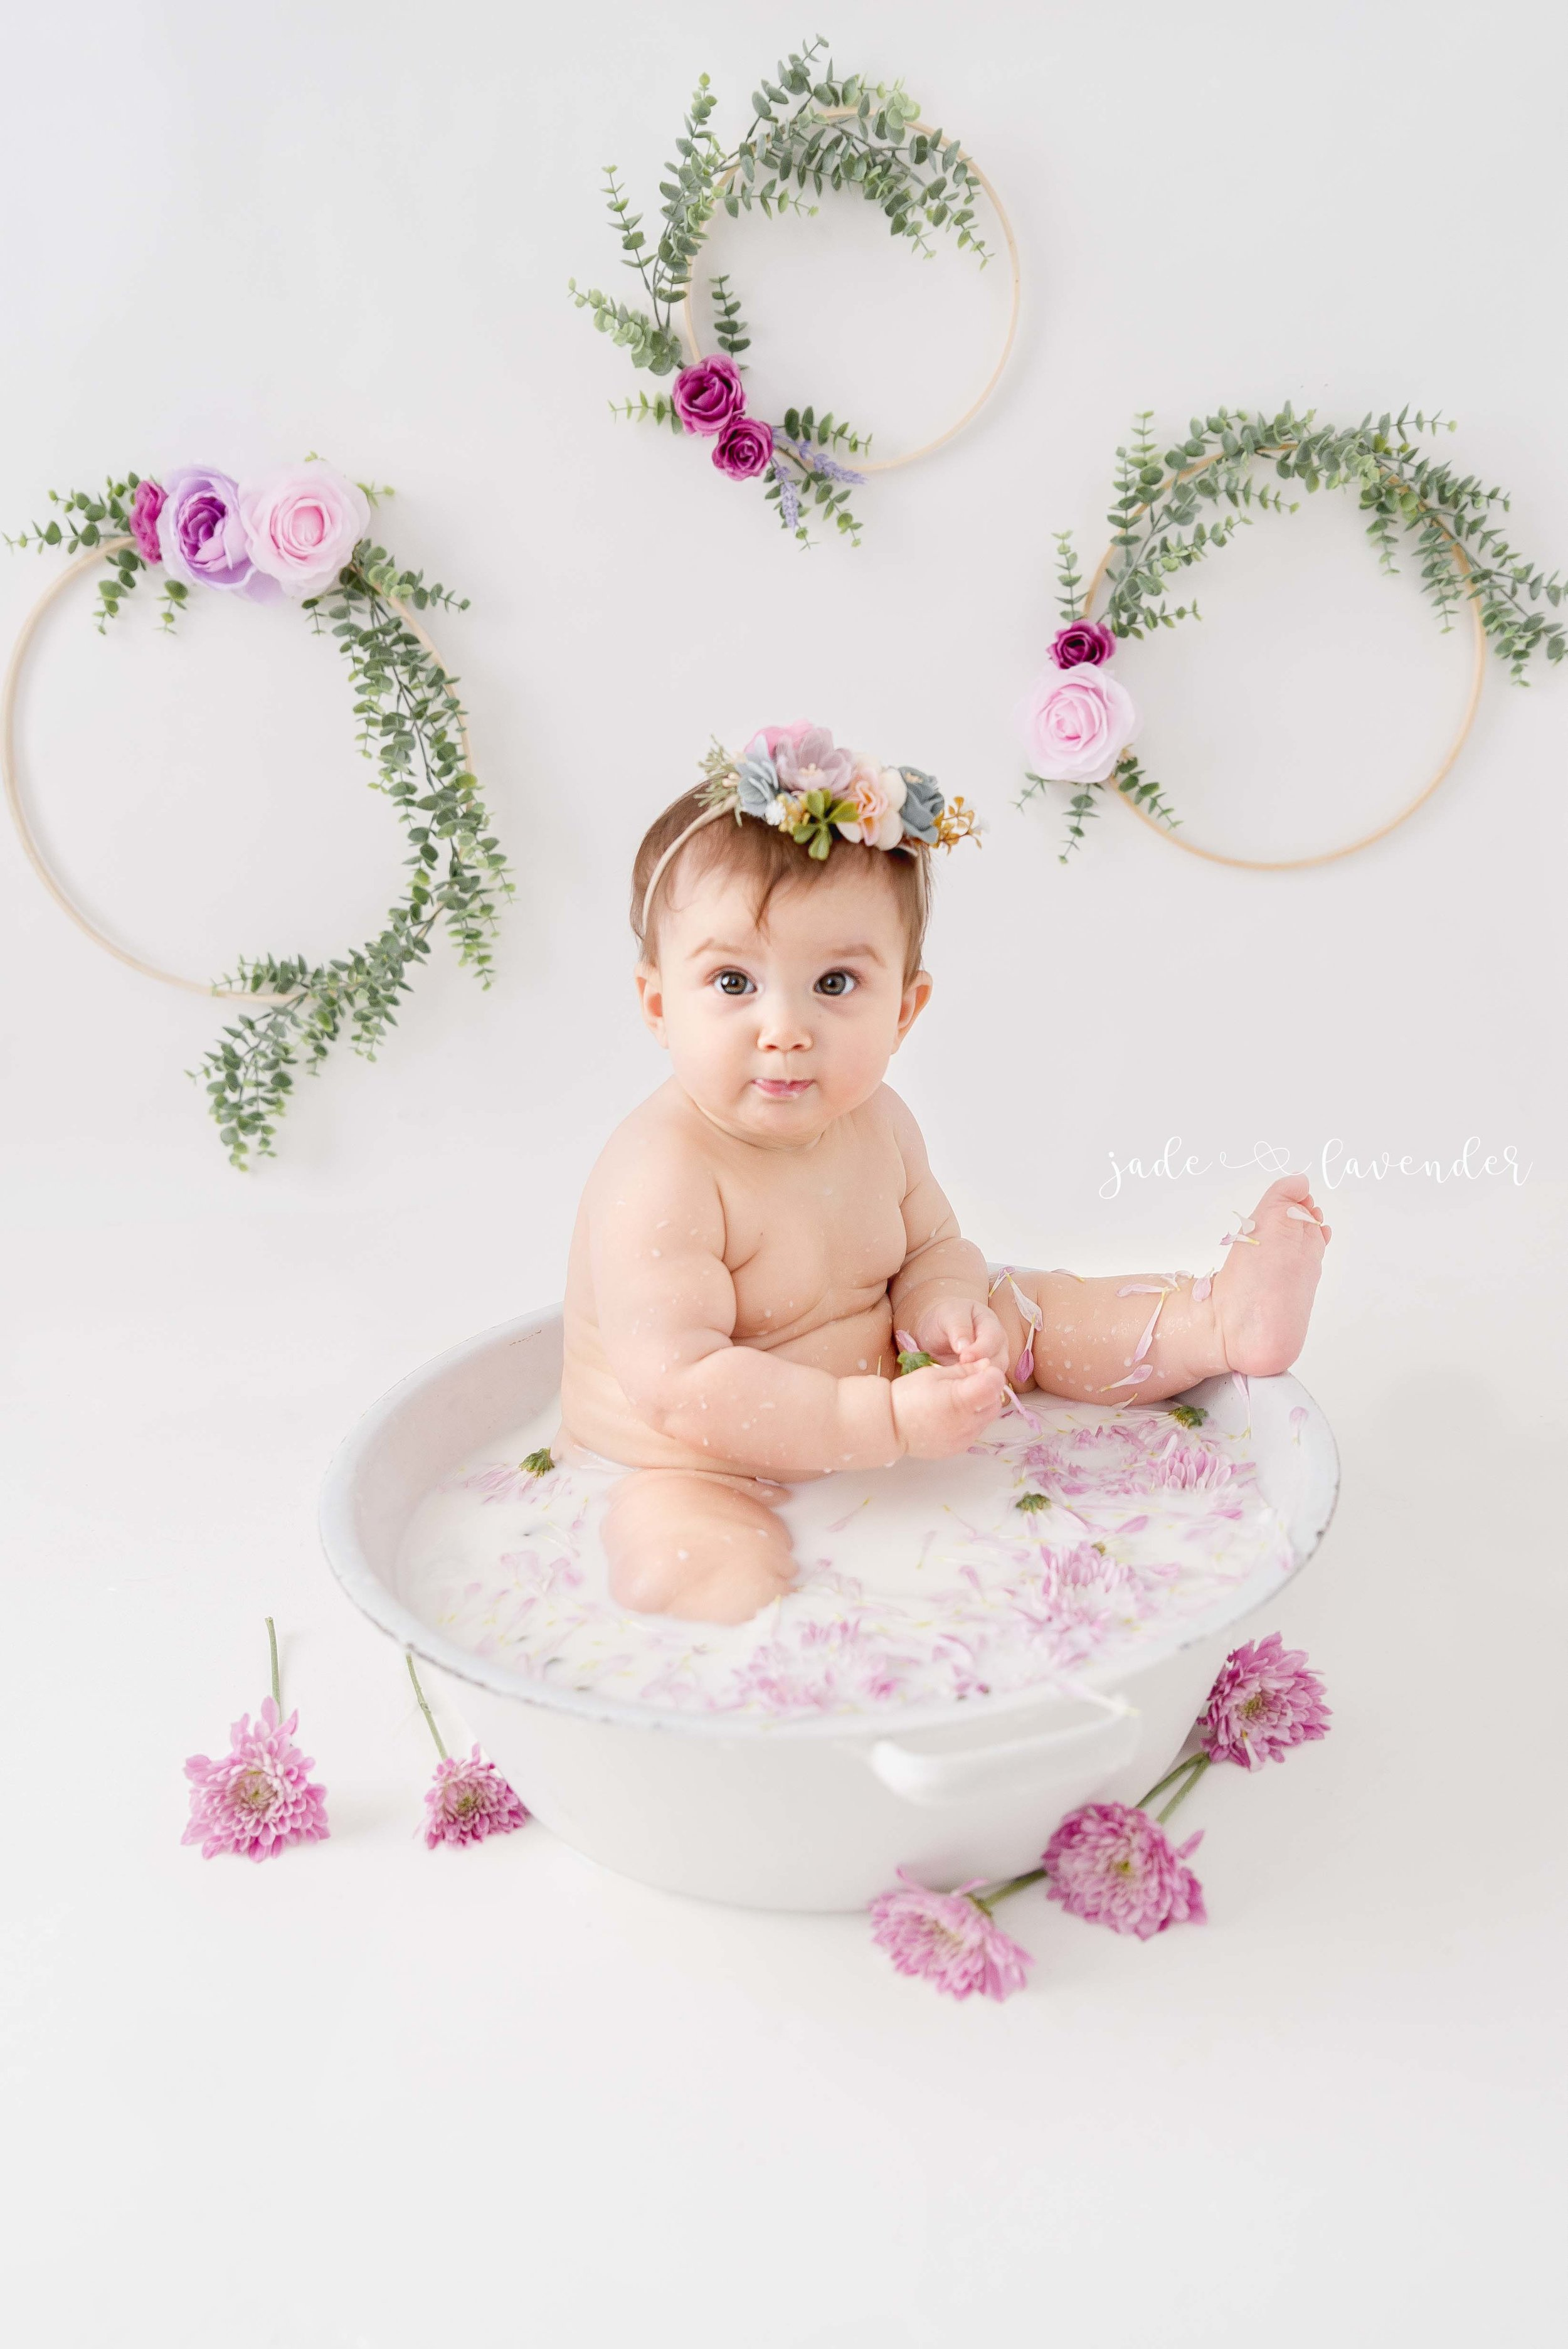 baby-milk-bath-images-milestone-photography-baby-photos-infant-images-spokane-washington.jpg